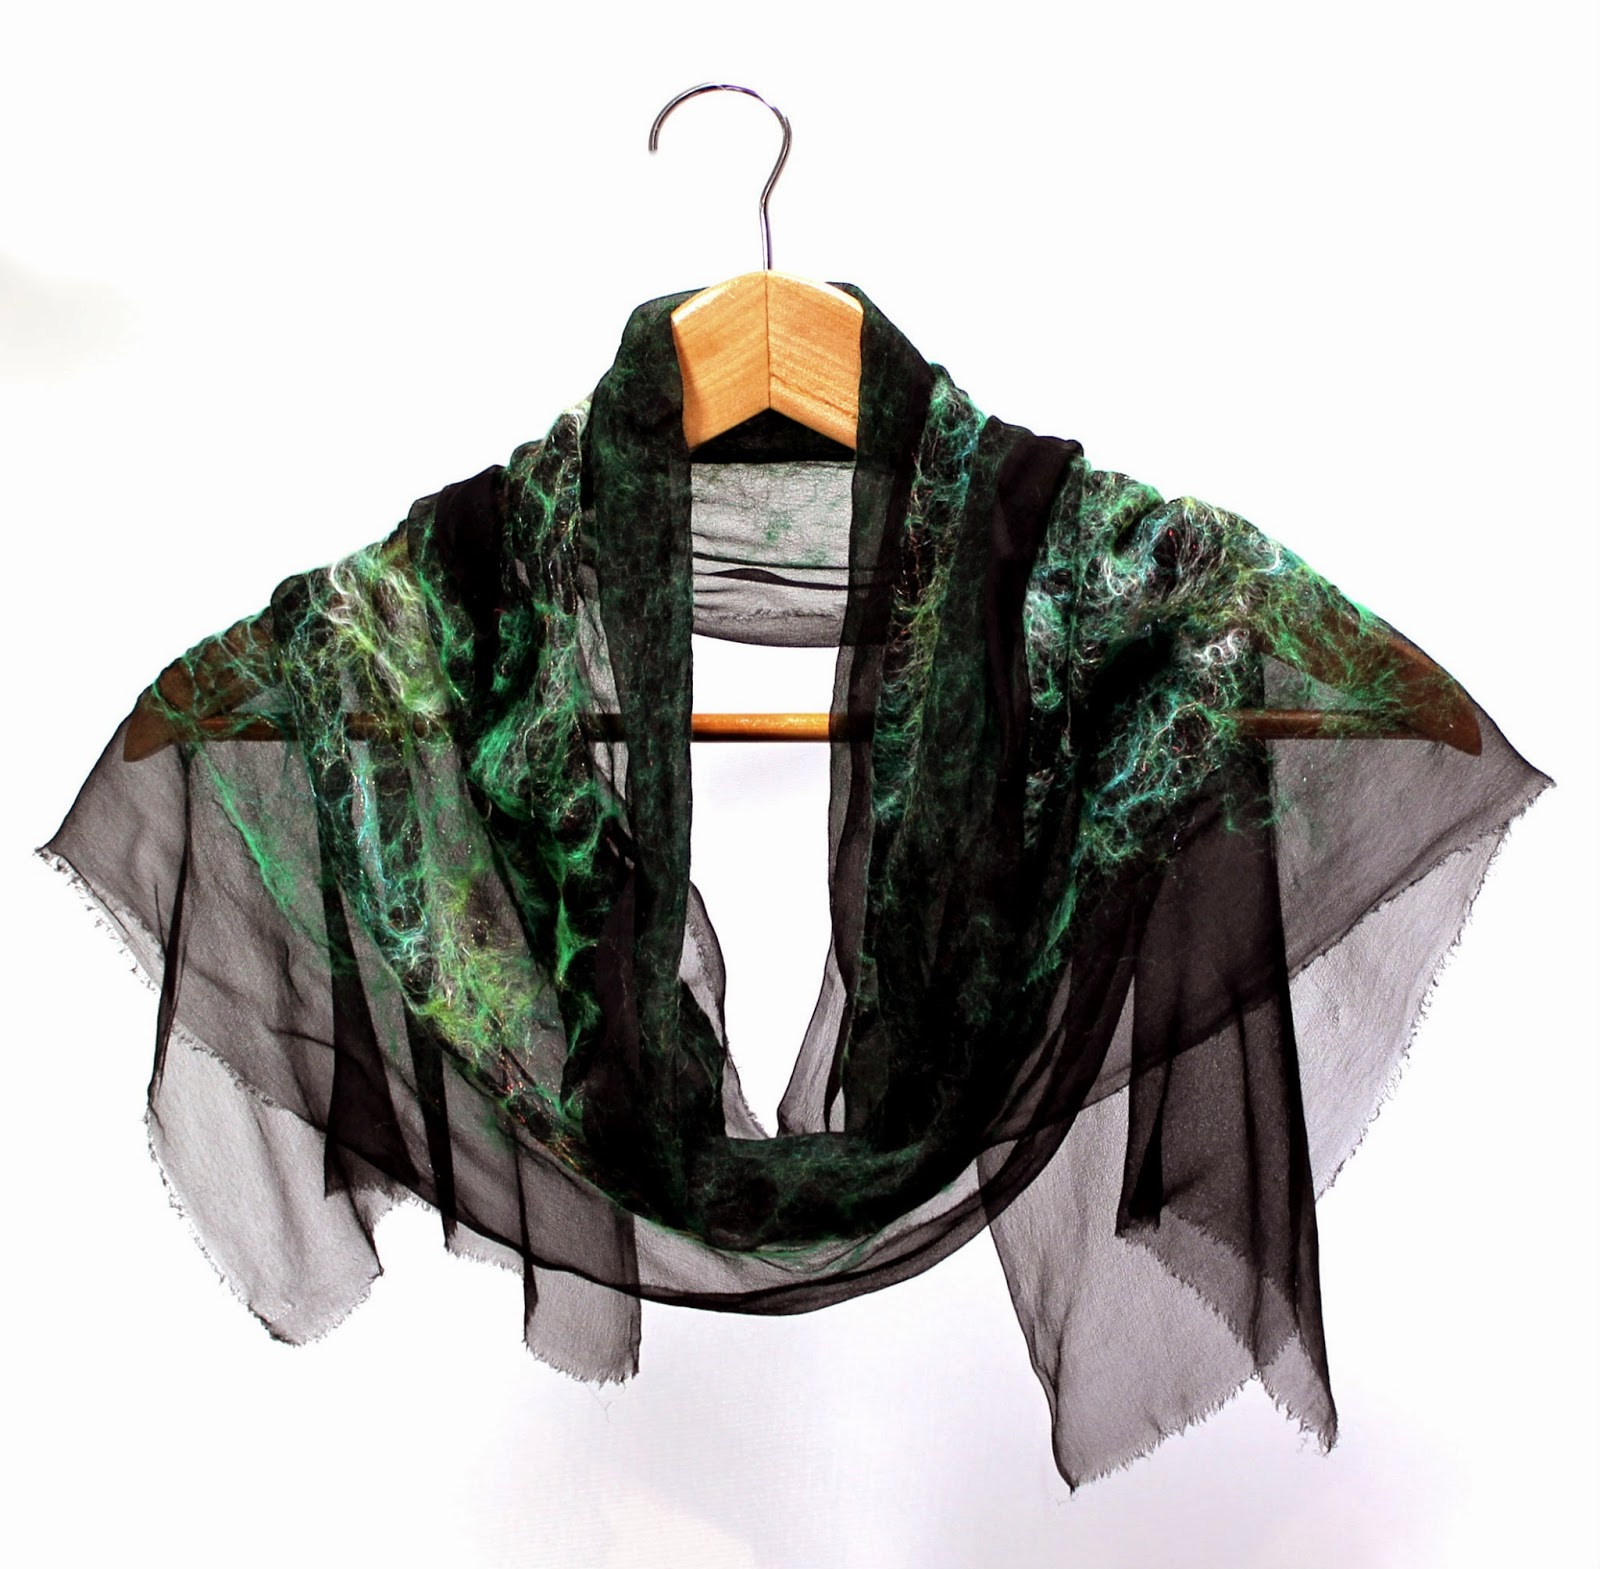 https://www.etsy.com/listing/206796597/felt-scarf-lacy-cashmere-soft-merino?ref=shop_home_active_8